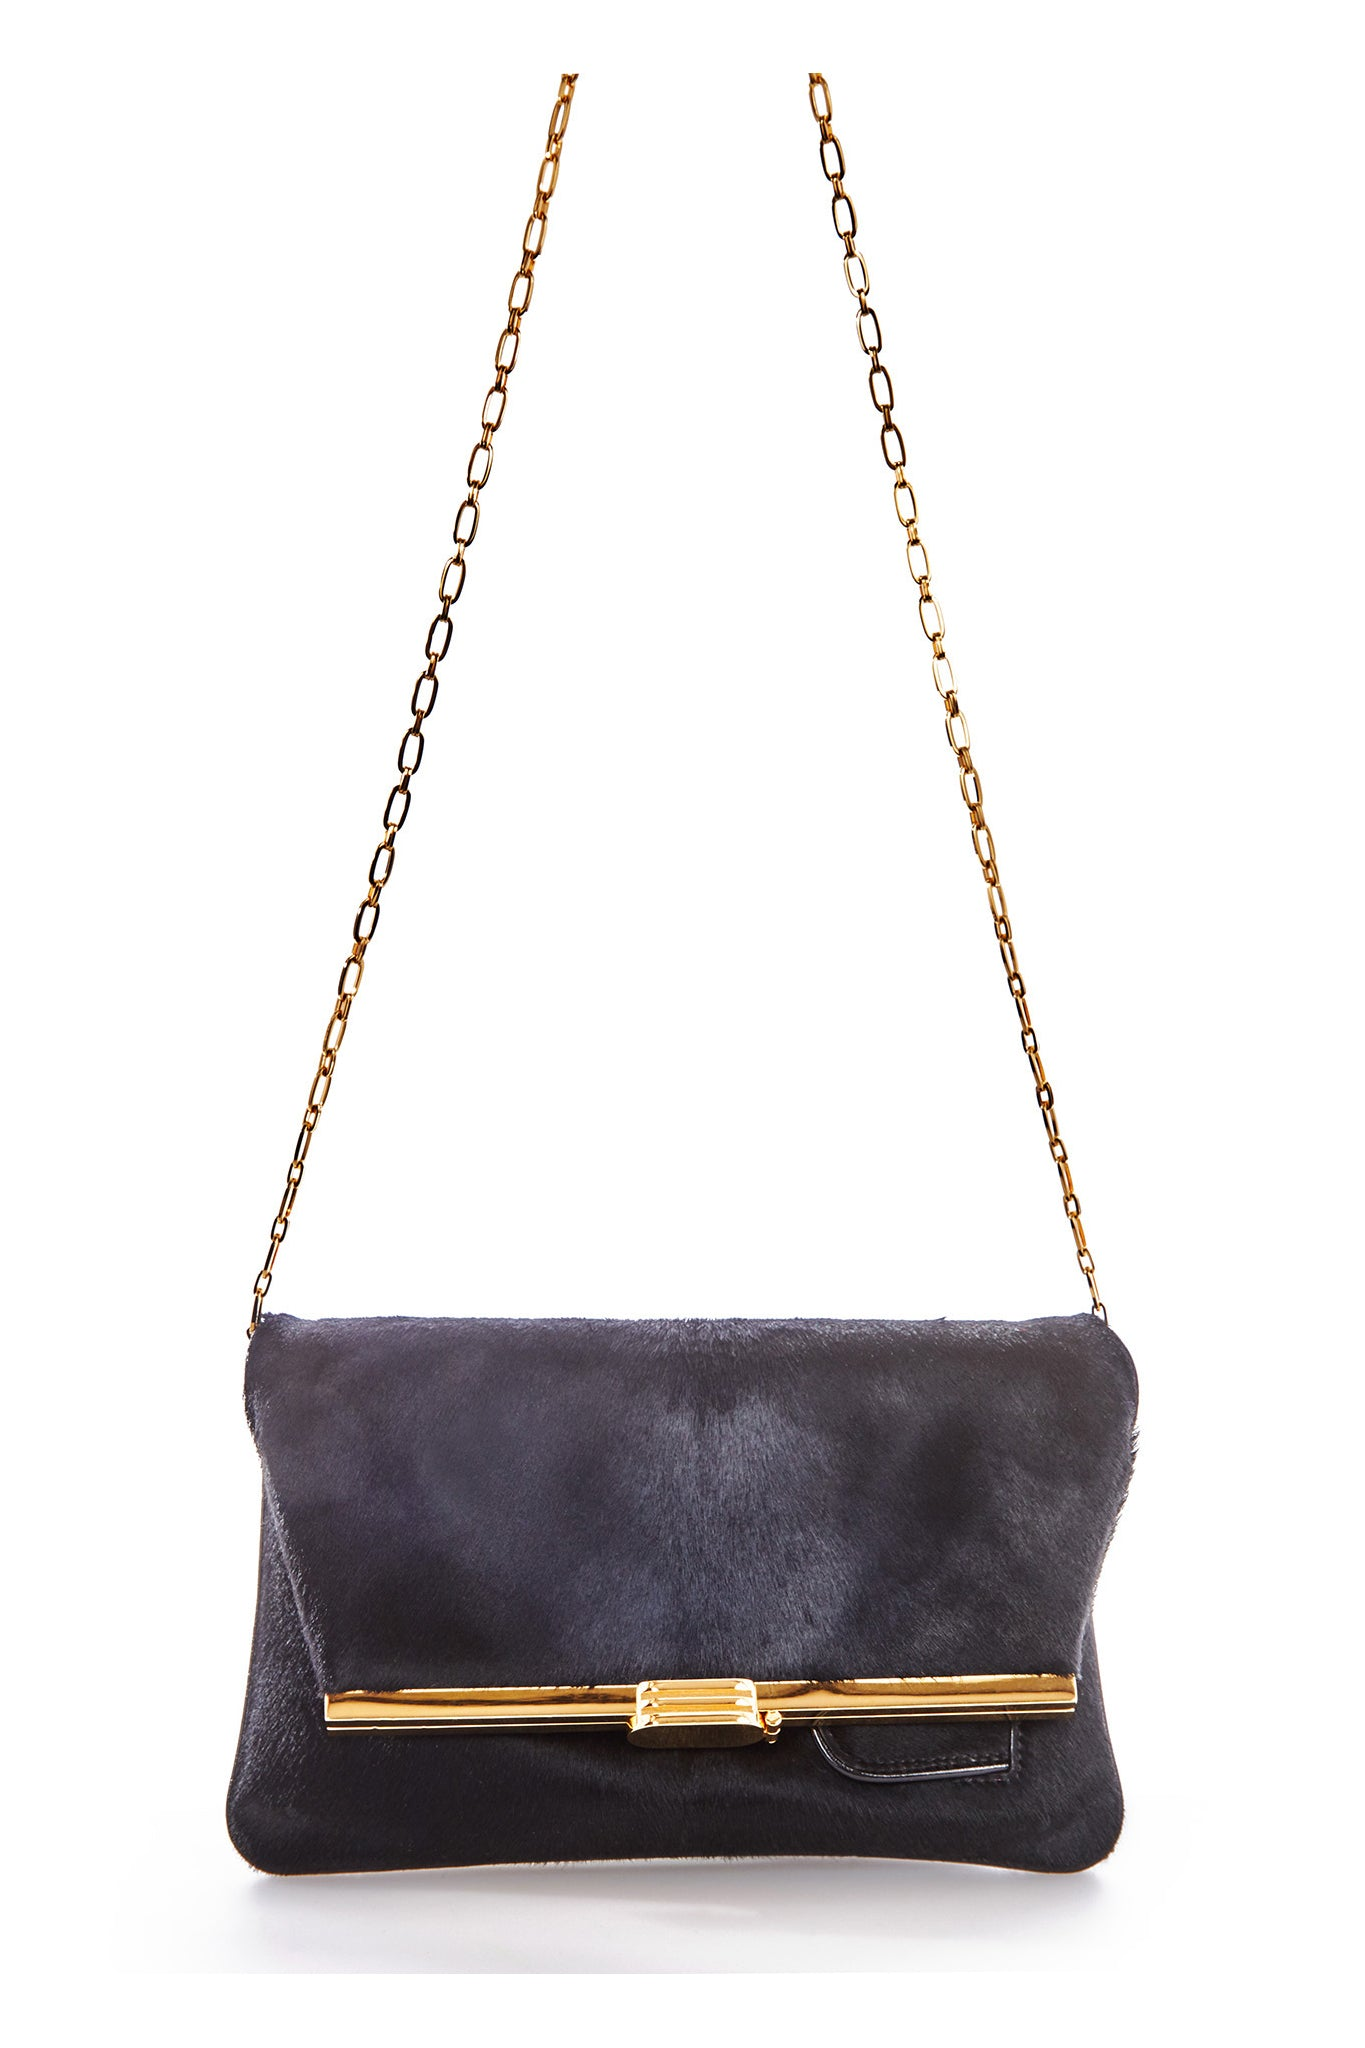 PM Clutch in Black Calf Hair